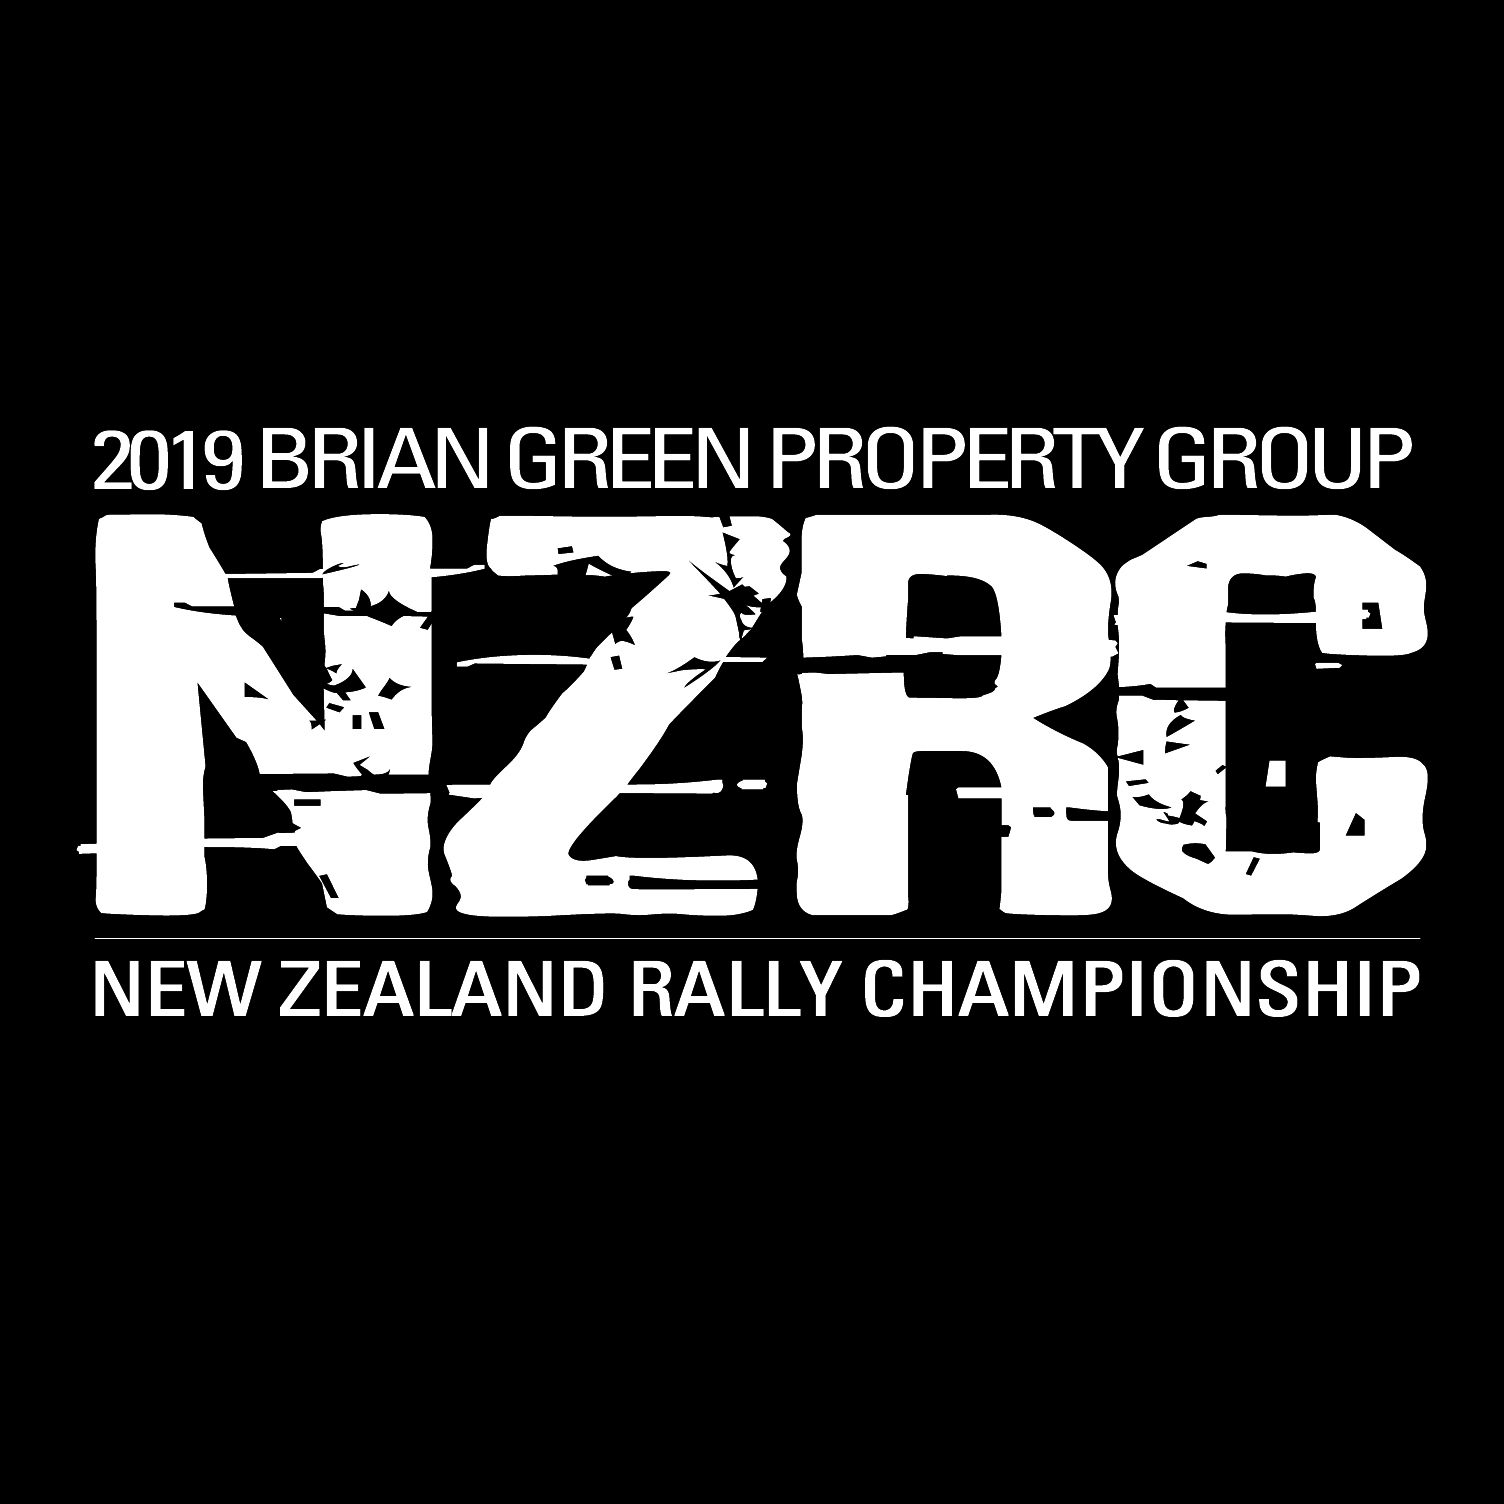 Dale Budge | :: Brian Green Property Group New Zealand Rally Championship ::